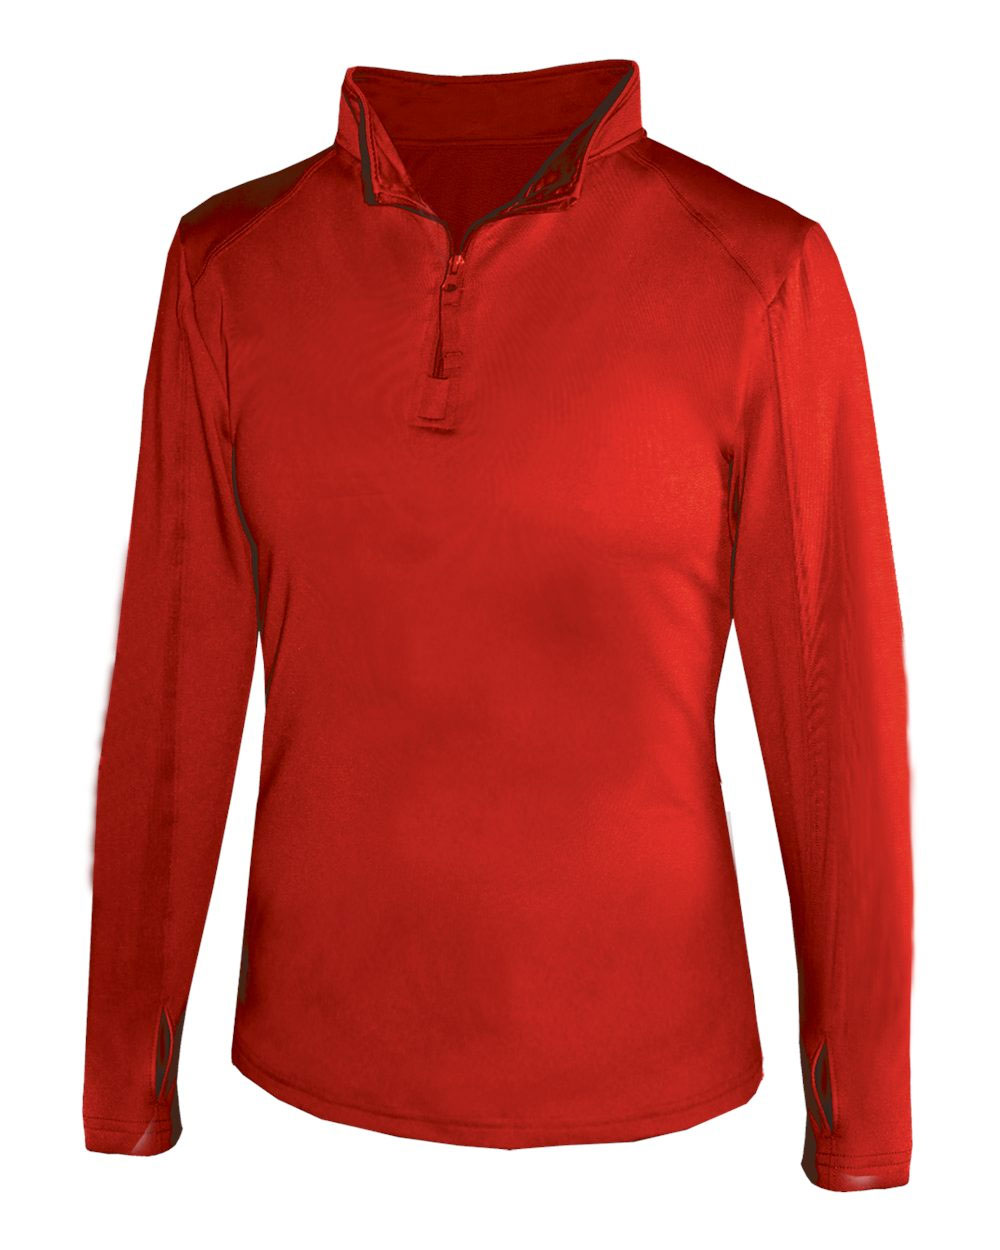 Badger Ladies Lightweight 1/4 Zip Pullover